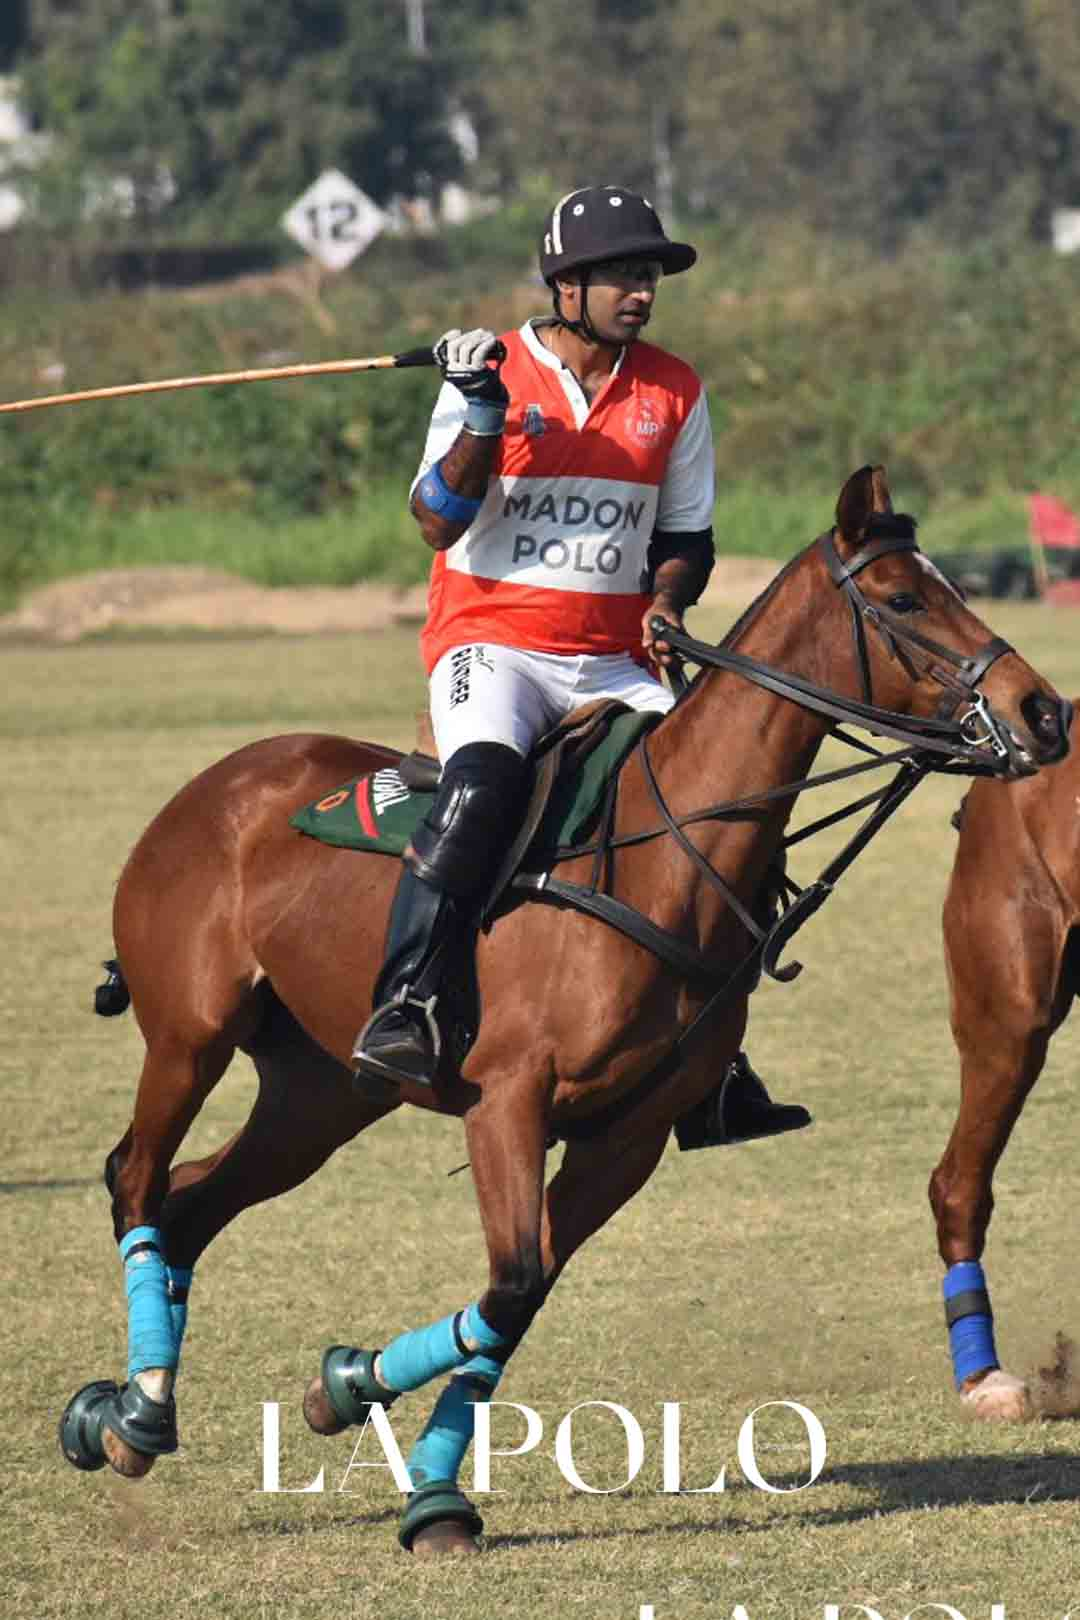 Southern command polo cup | simaran singh shergill